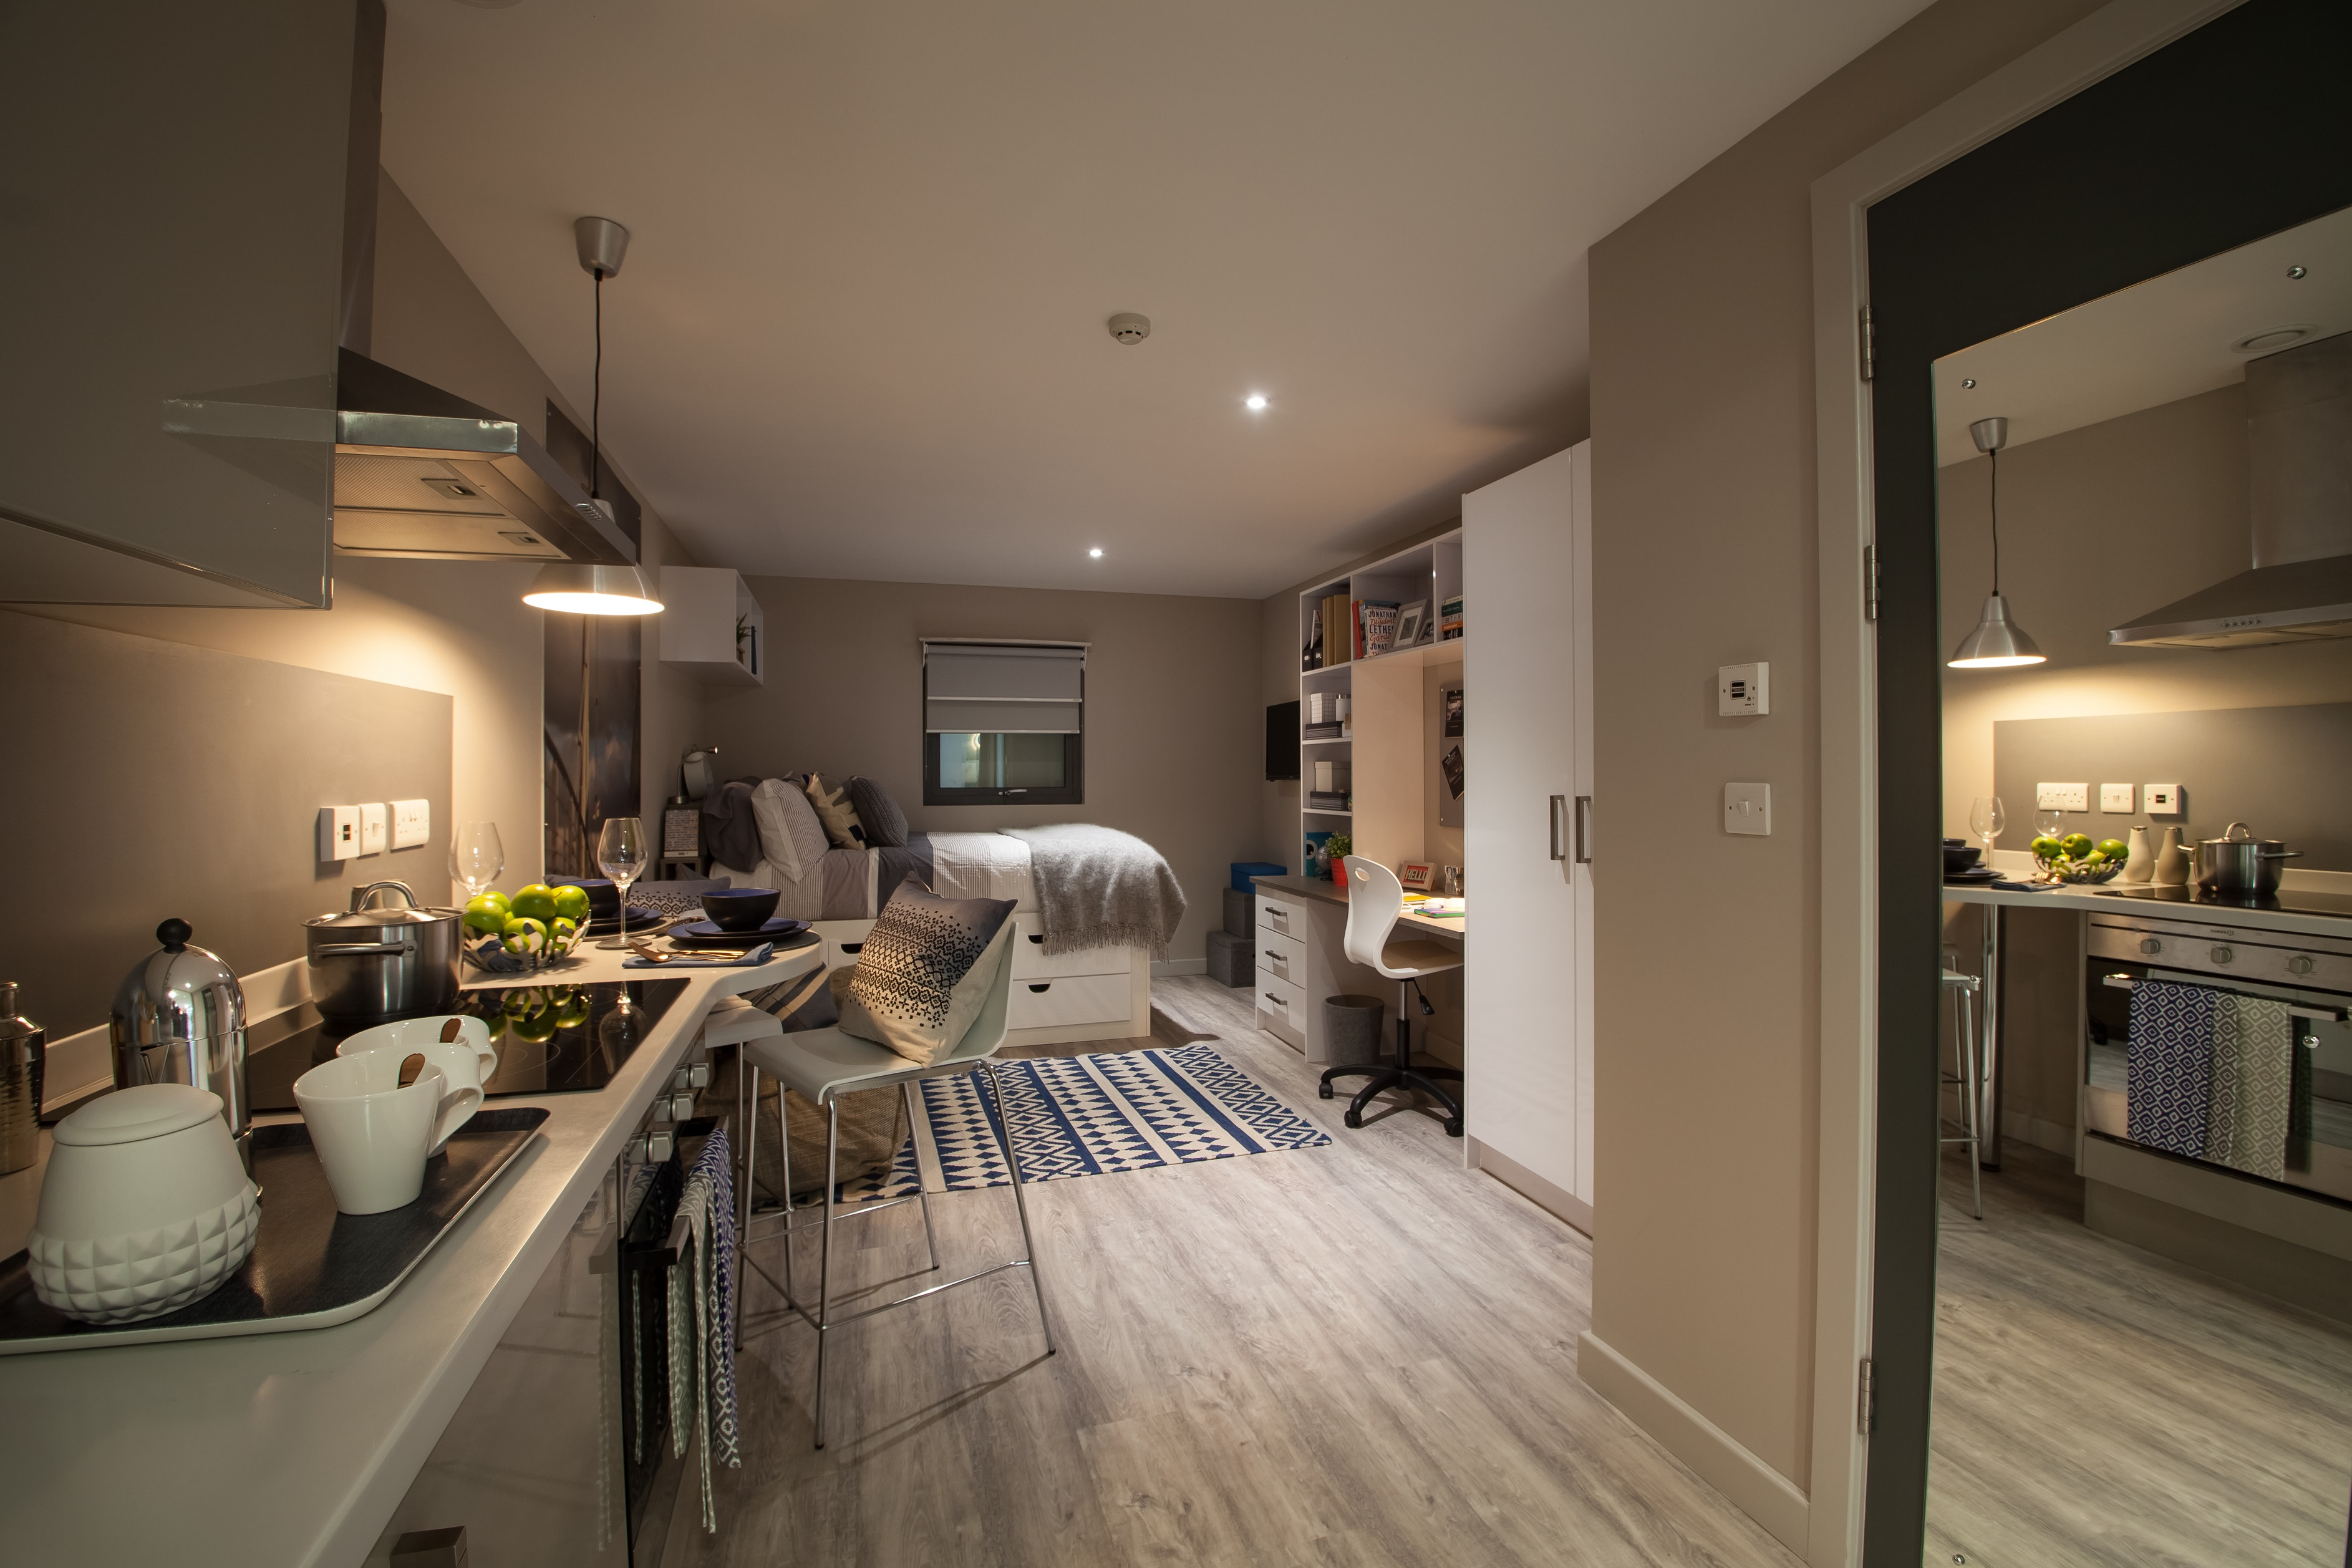 Student Accommodation Goes Luxury   House of Coco